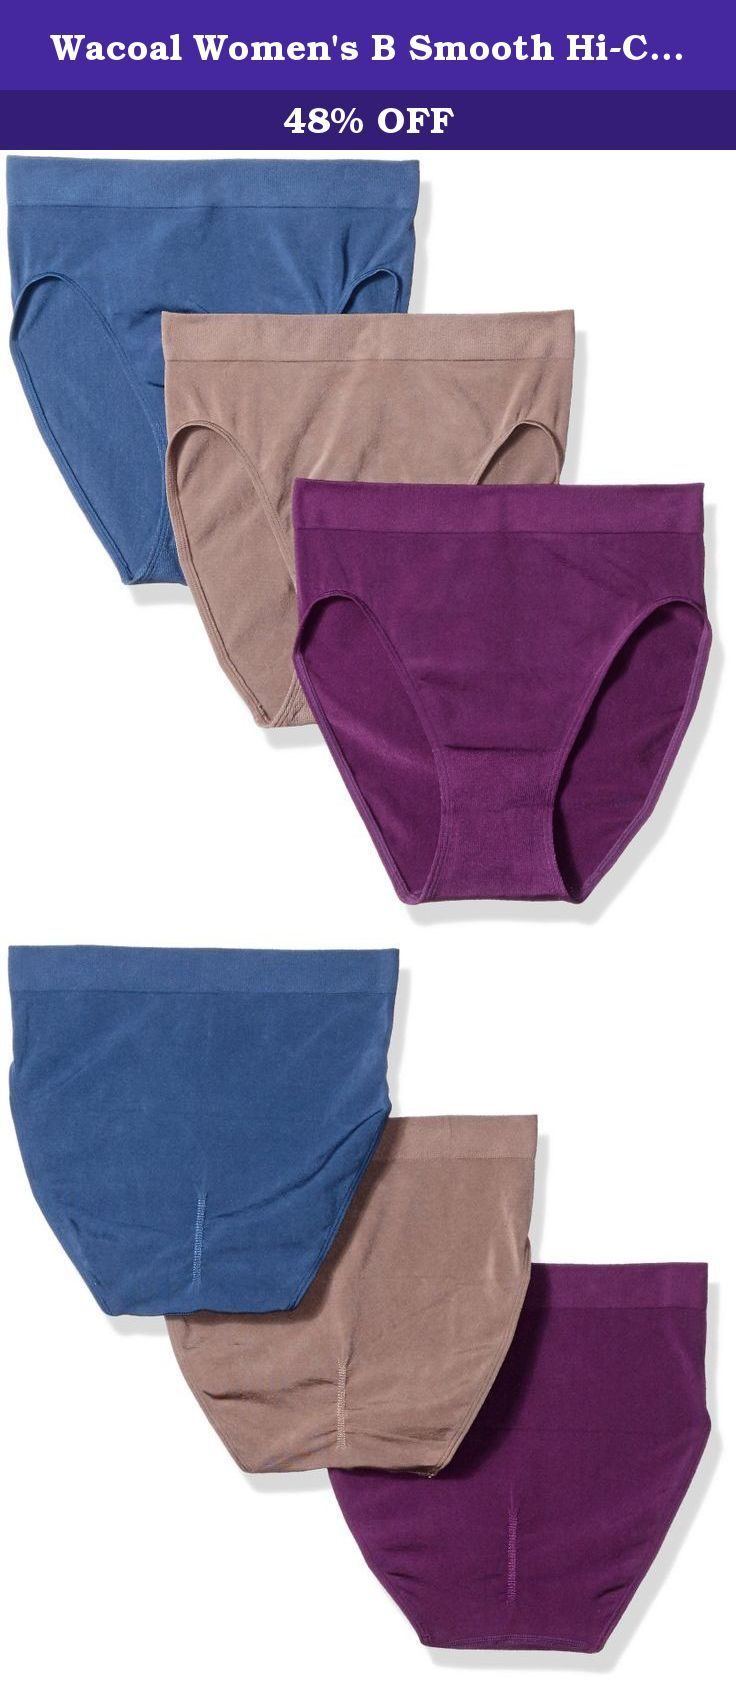 b2c8210a29d5 Wacoal Women's B Smooth Hi-Cut Brief Panty Pack, Cappuccino/Dark Denim/Wine  Berry, Large. Awareness full figure underwire bra offers molded cups that  offers ...